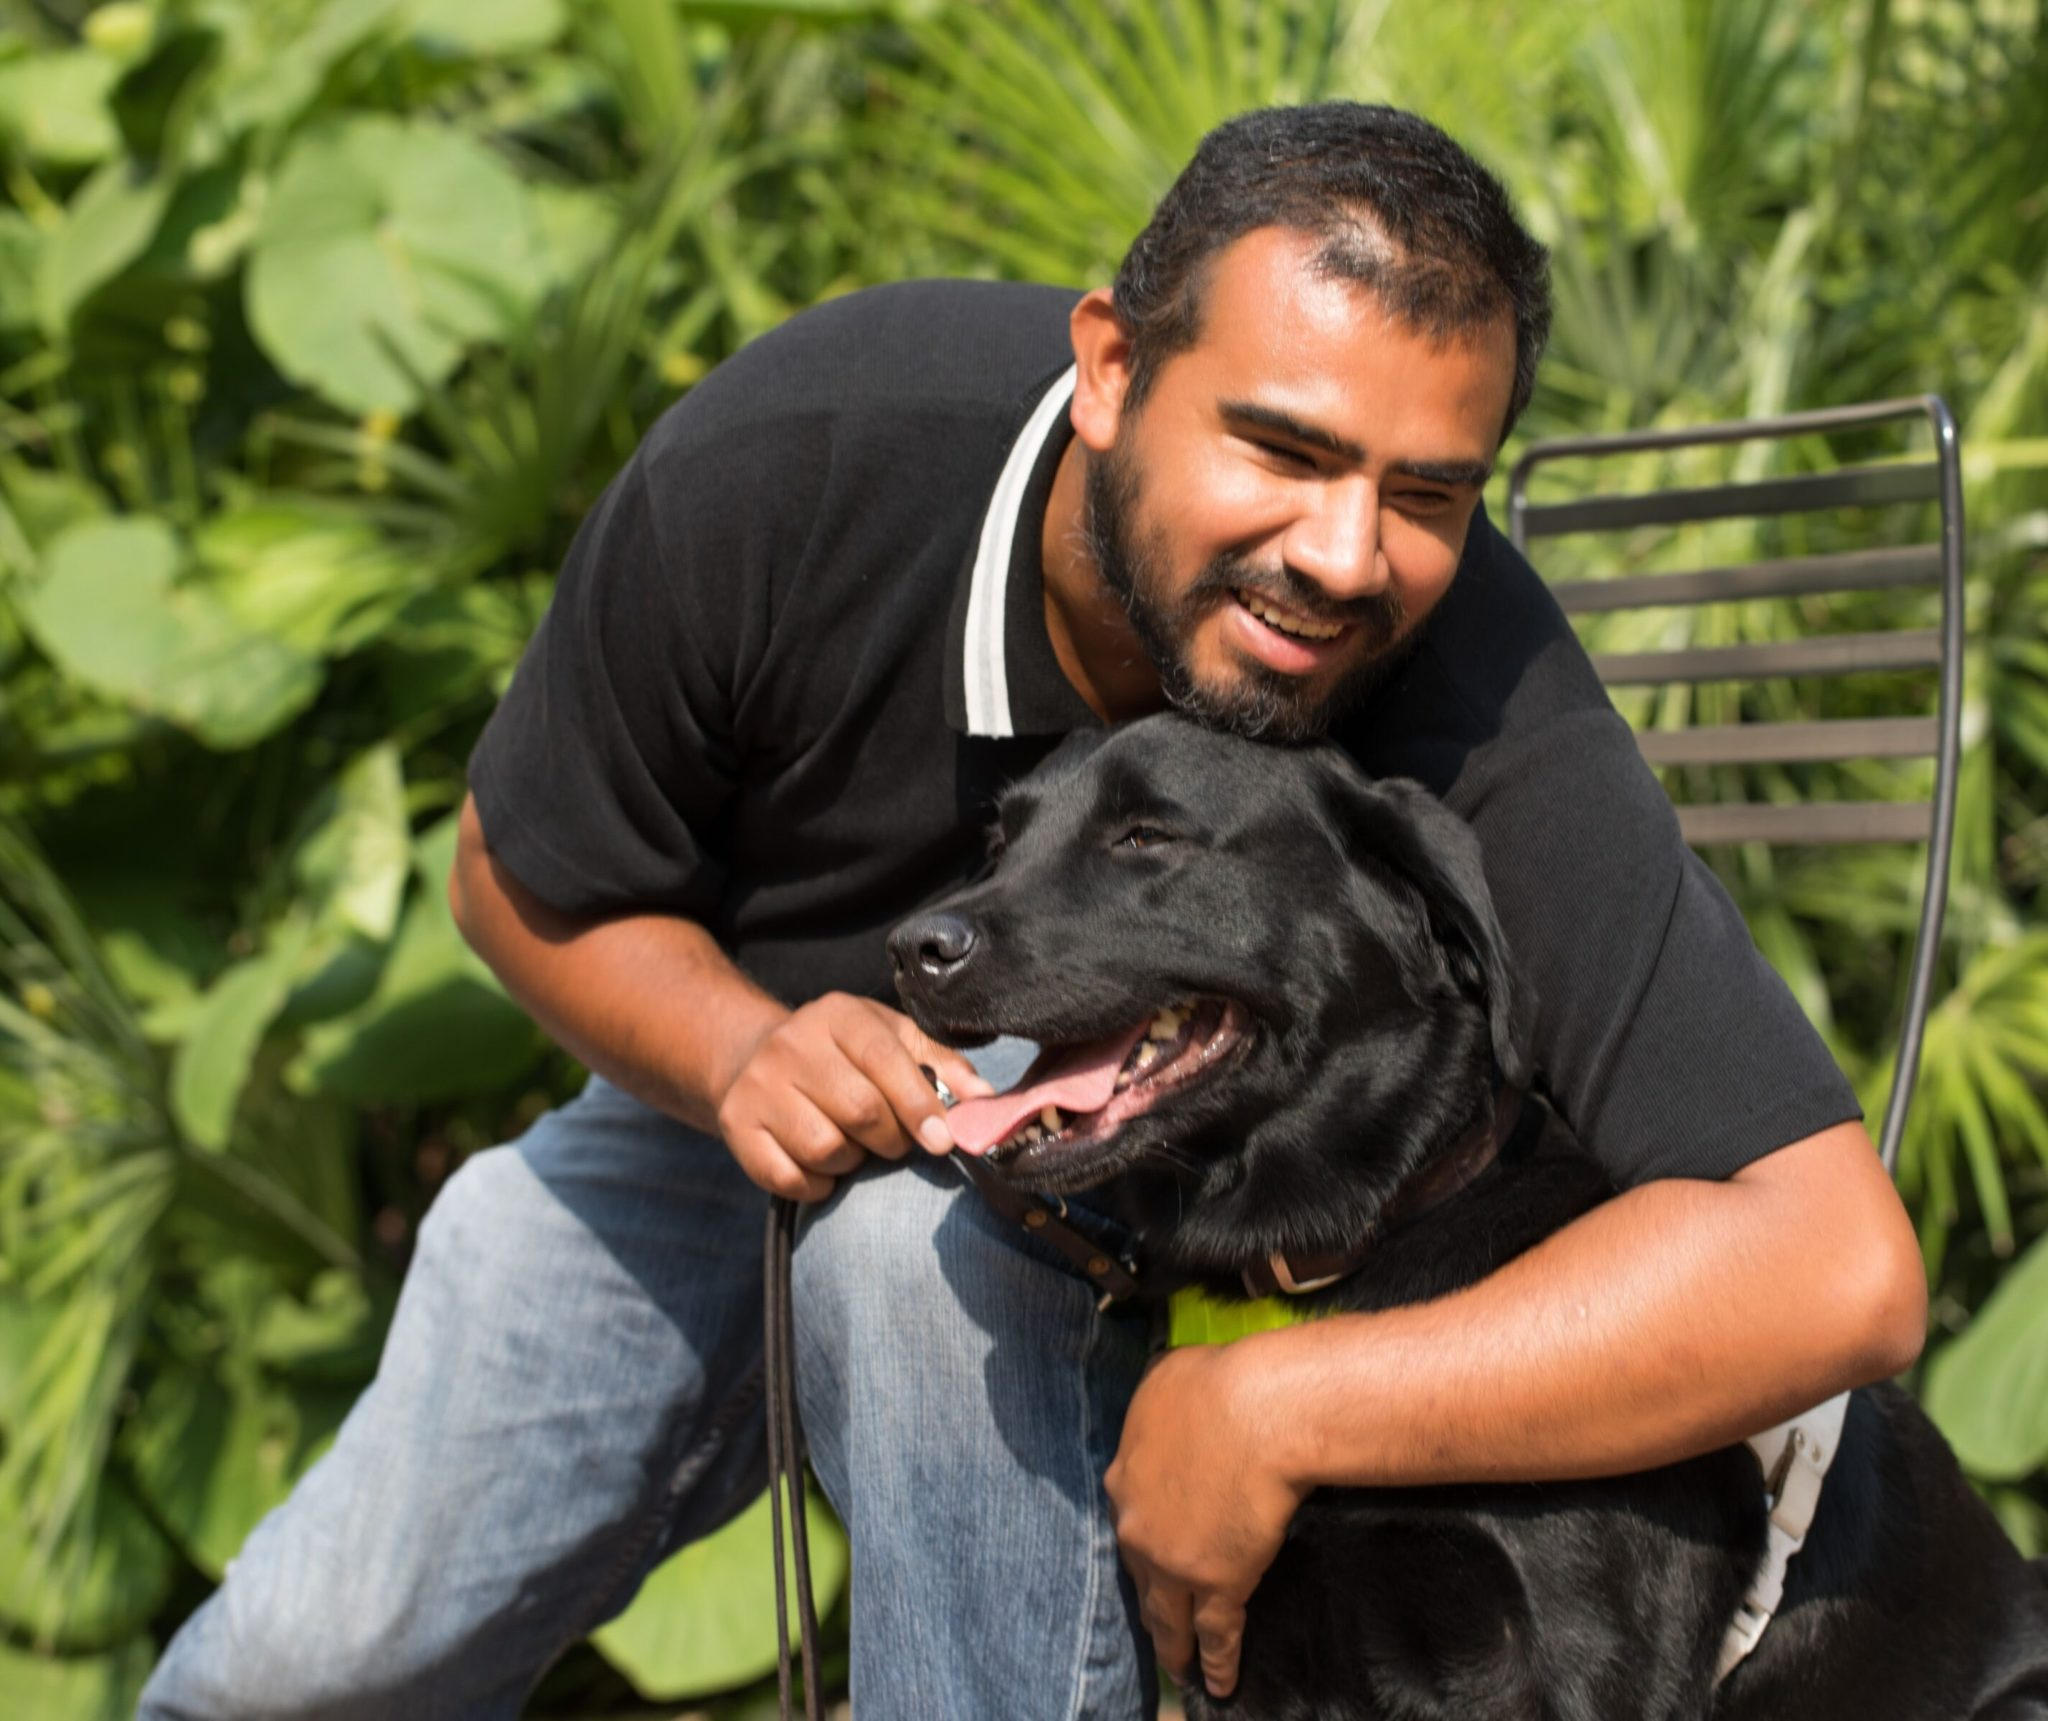 Guide Dog Owner, Pete smiling and hugging his guide dog Chance. This black labrador joyfully receives the affection!